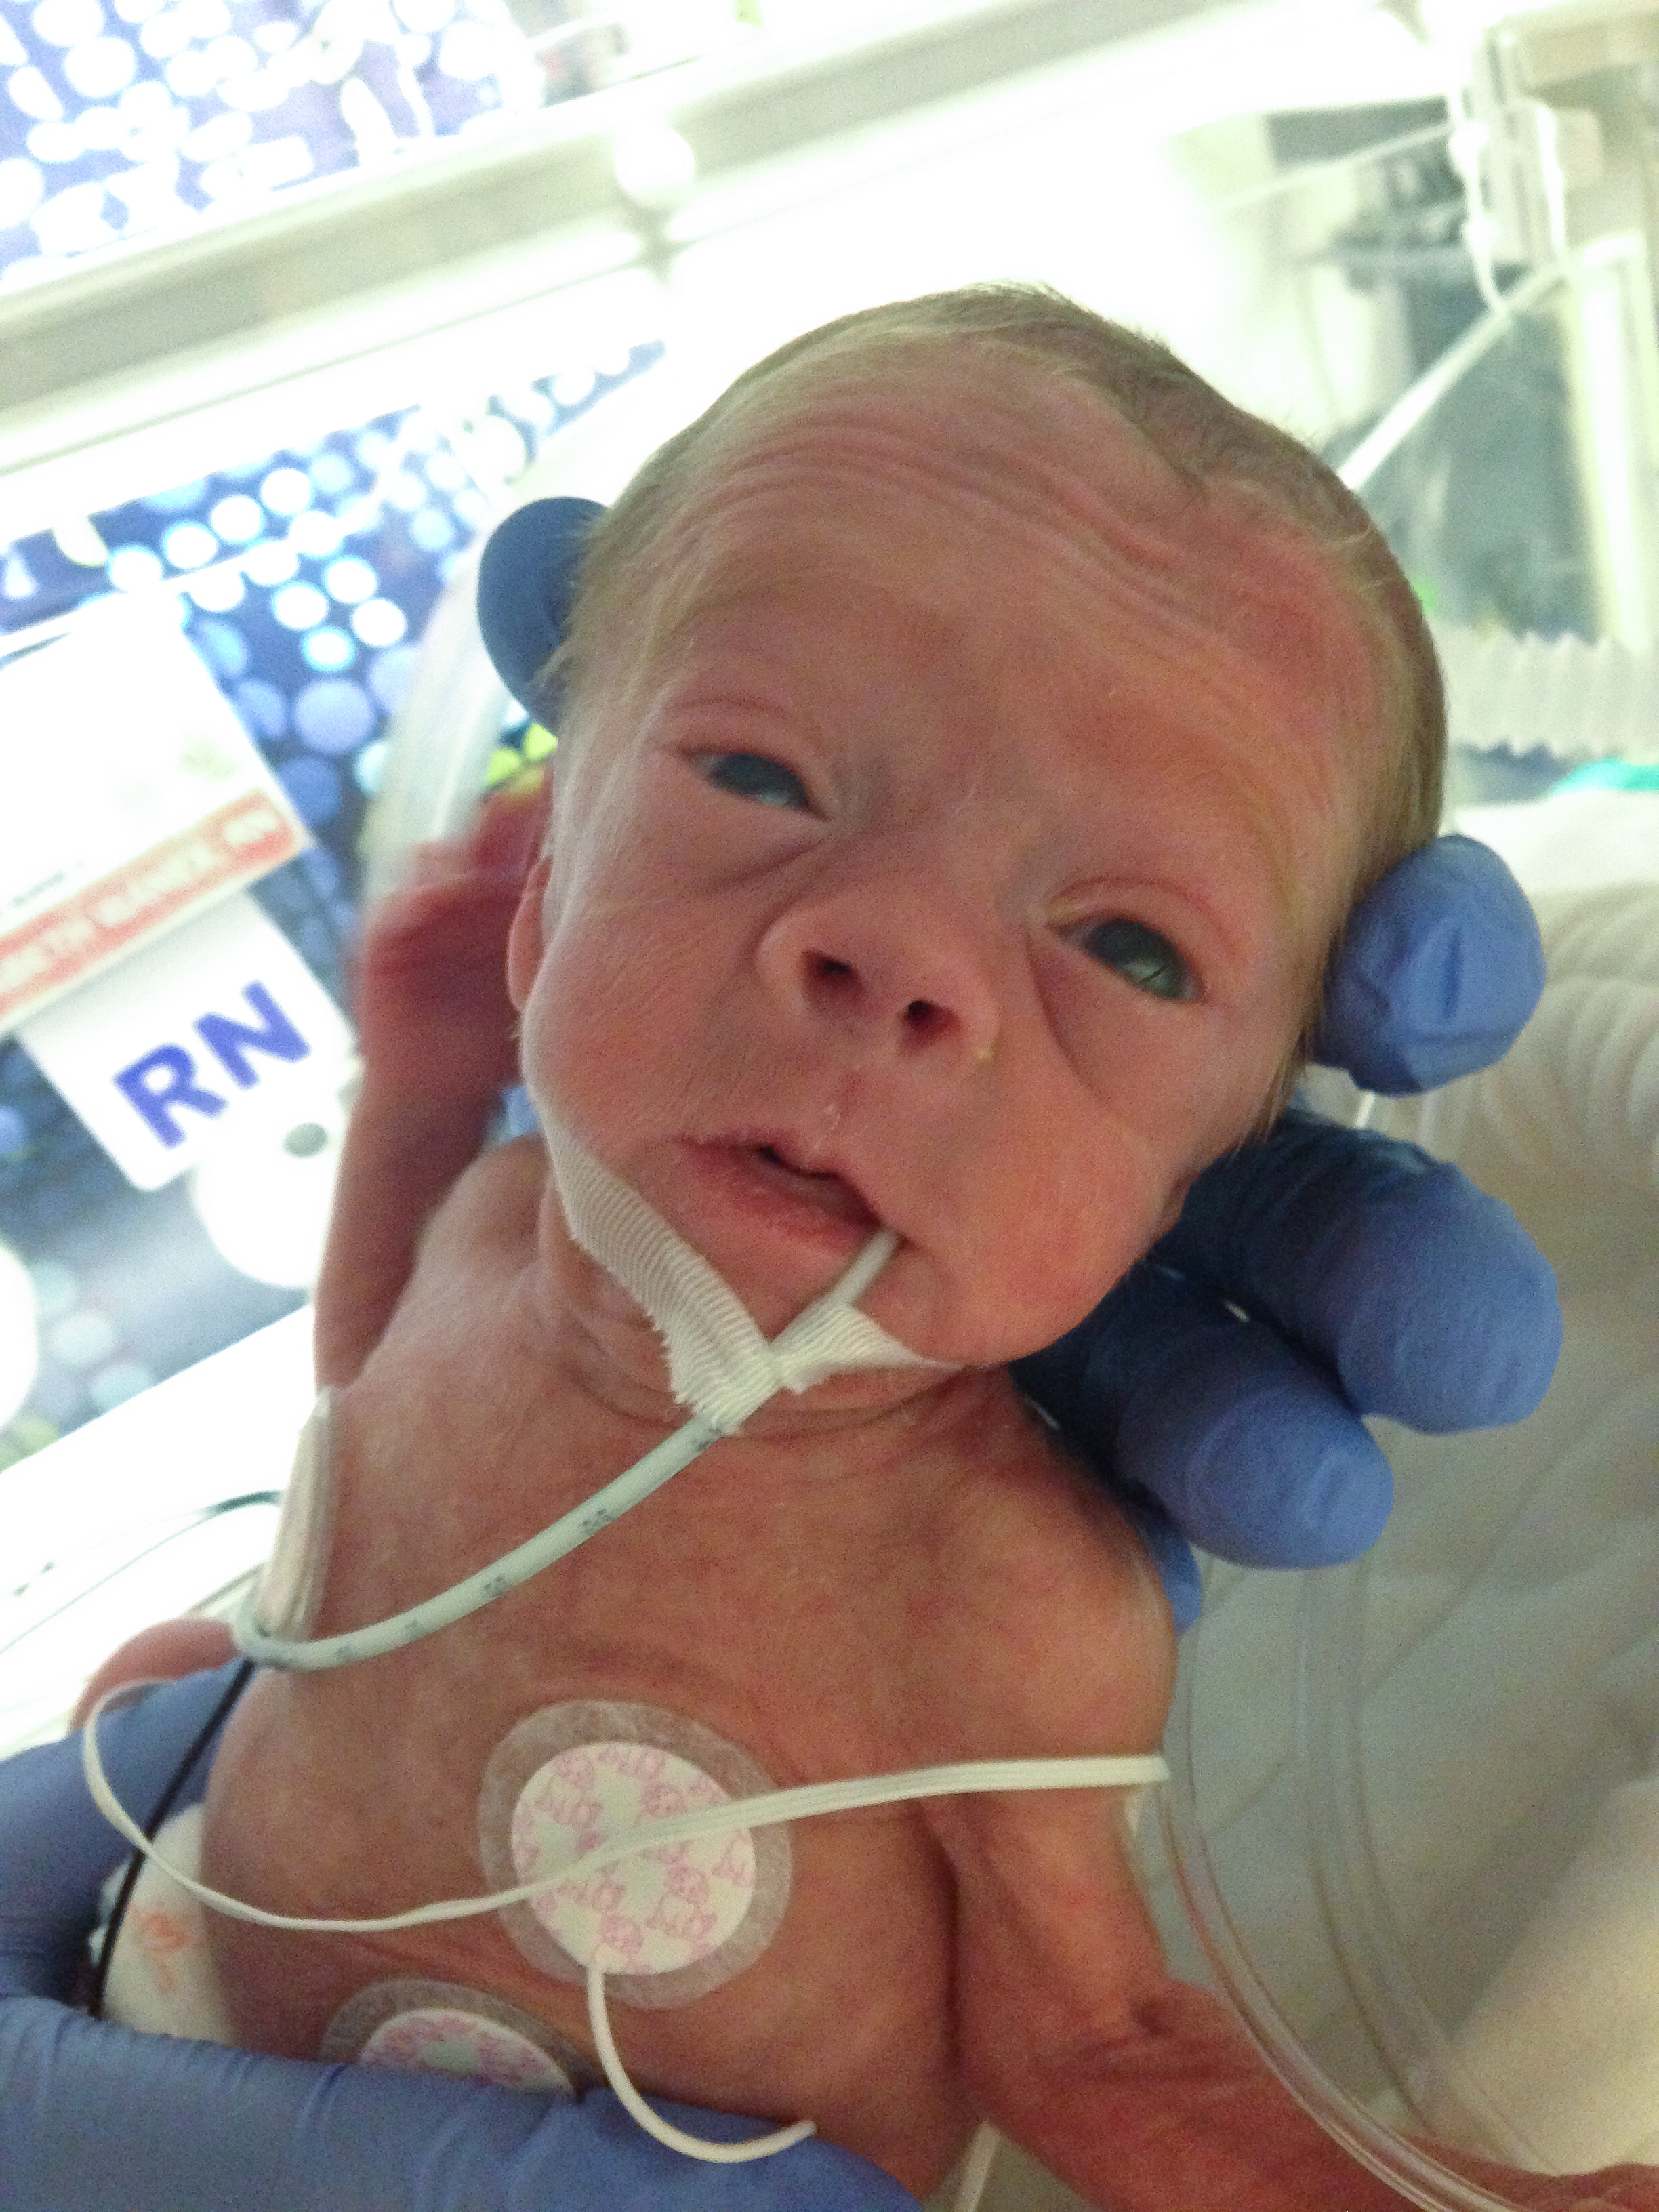 Addie Belle with her orogastric tube, or OGT